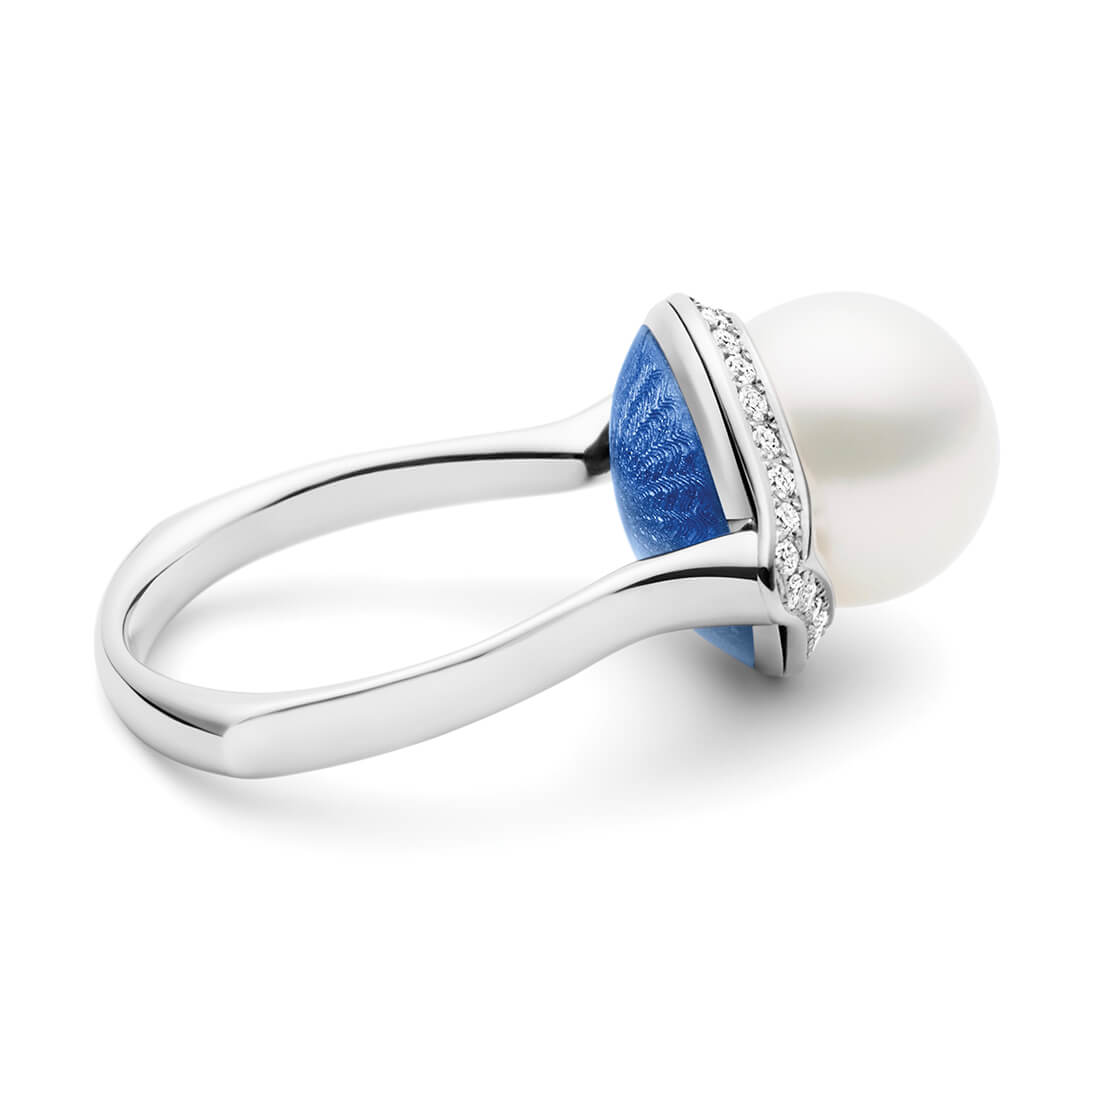 Ascensus Ring Mediterranean Blue, White Gold